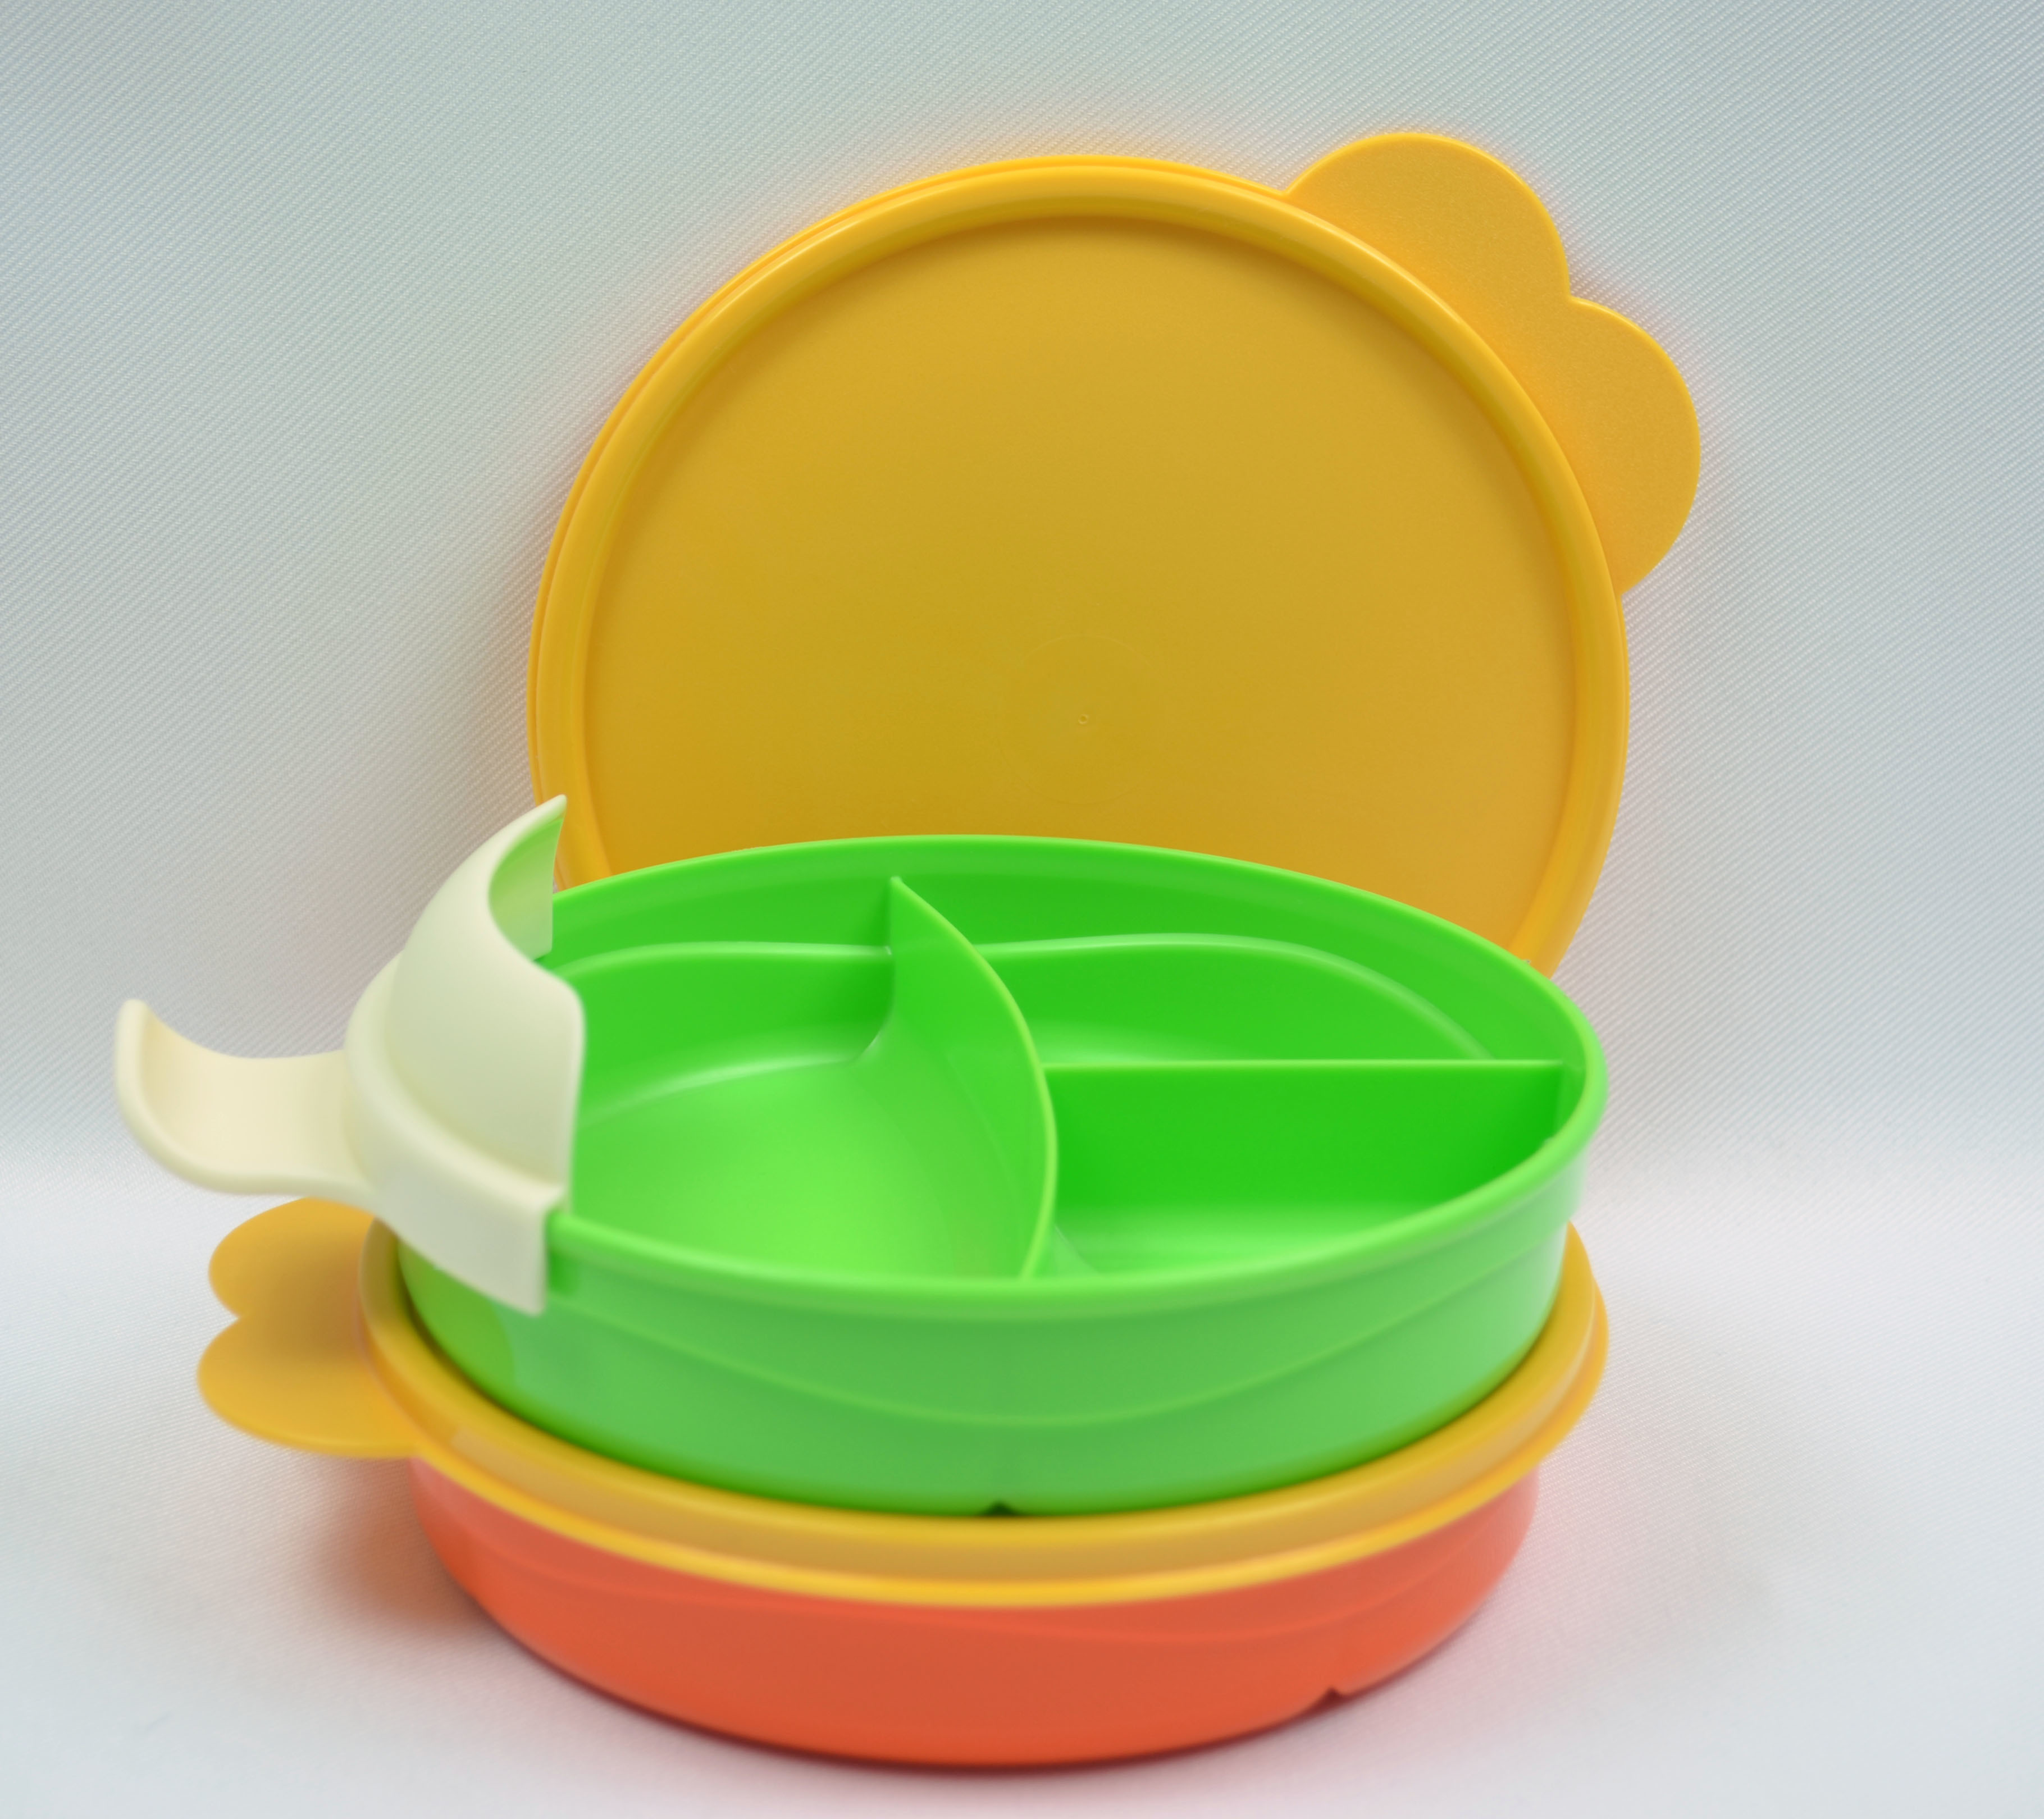 Sectioned Tupperware: Tupperware 2 Toddler Size Divided Dish Set With Easy Grip